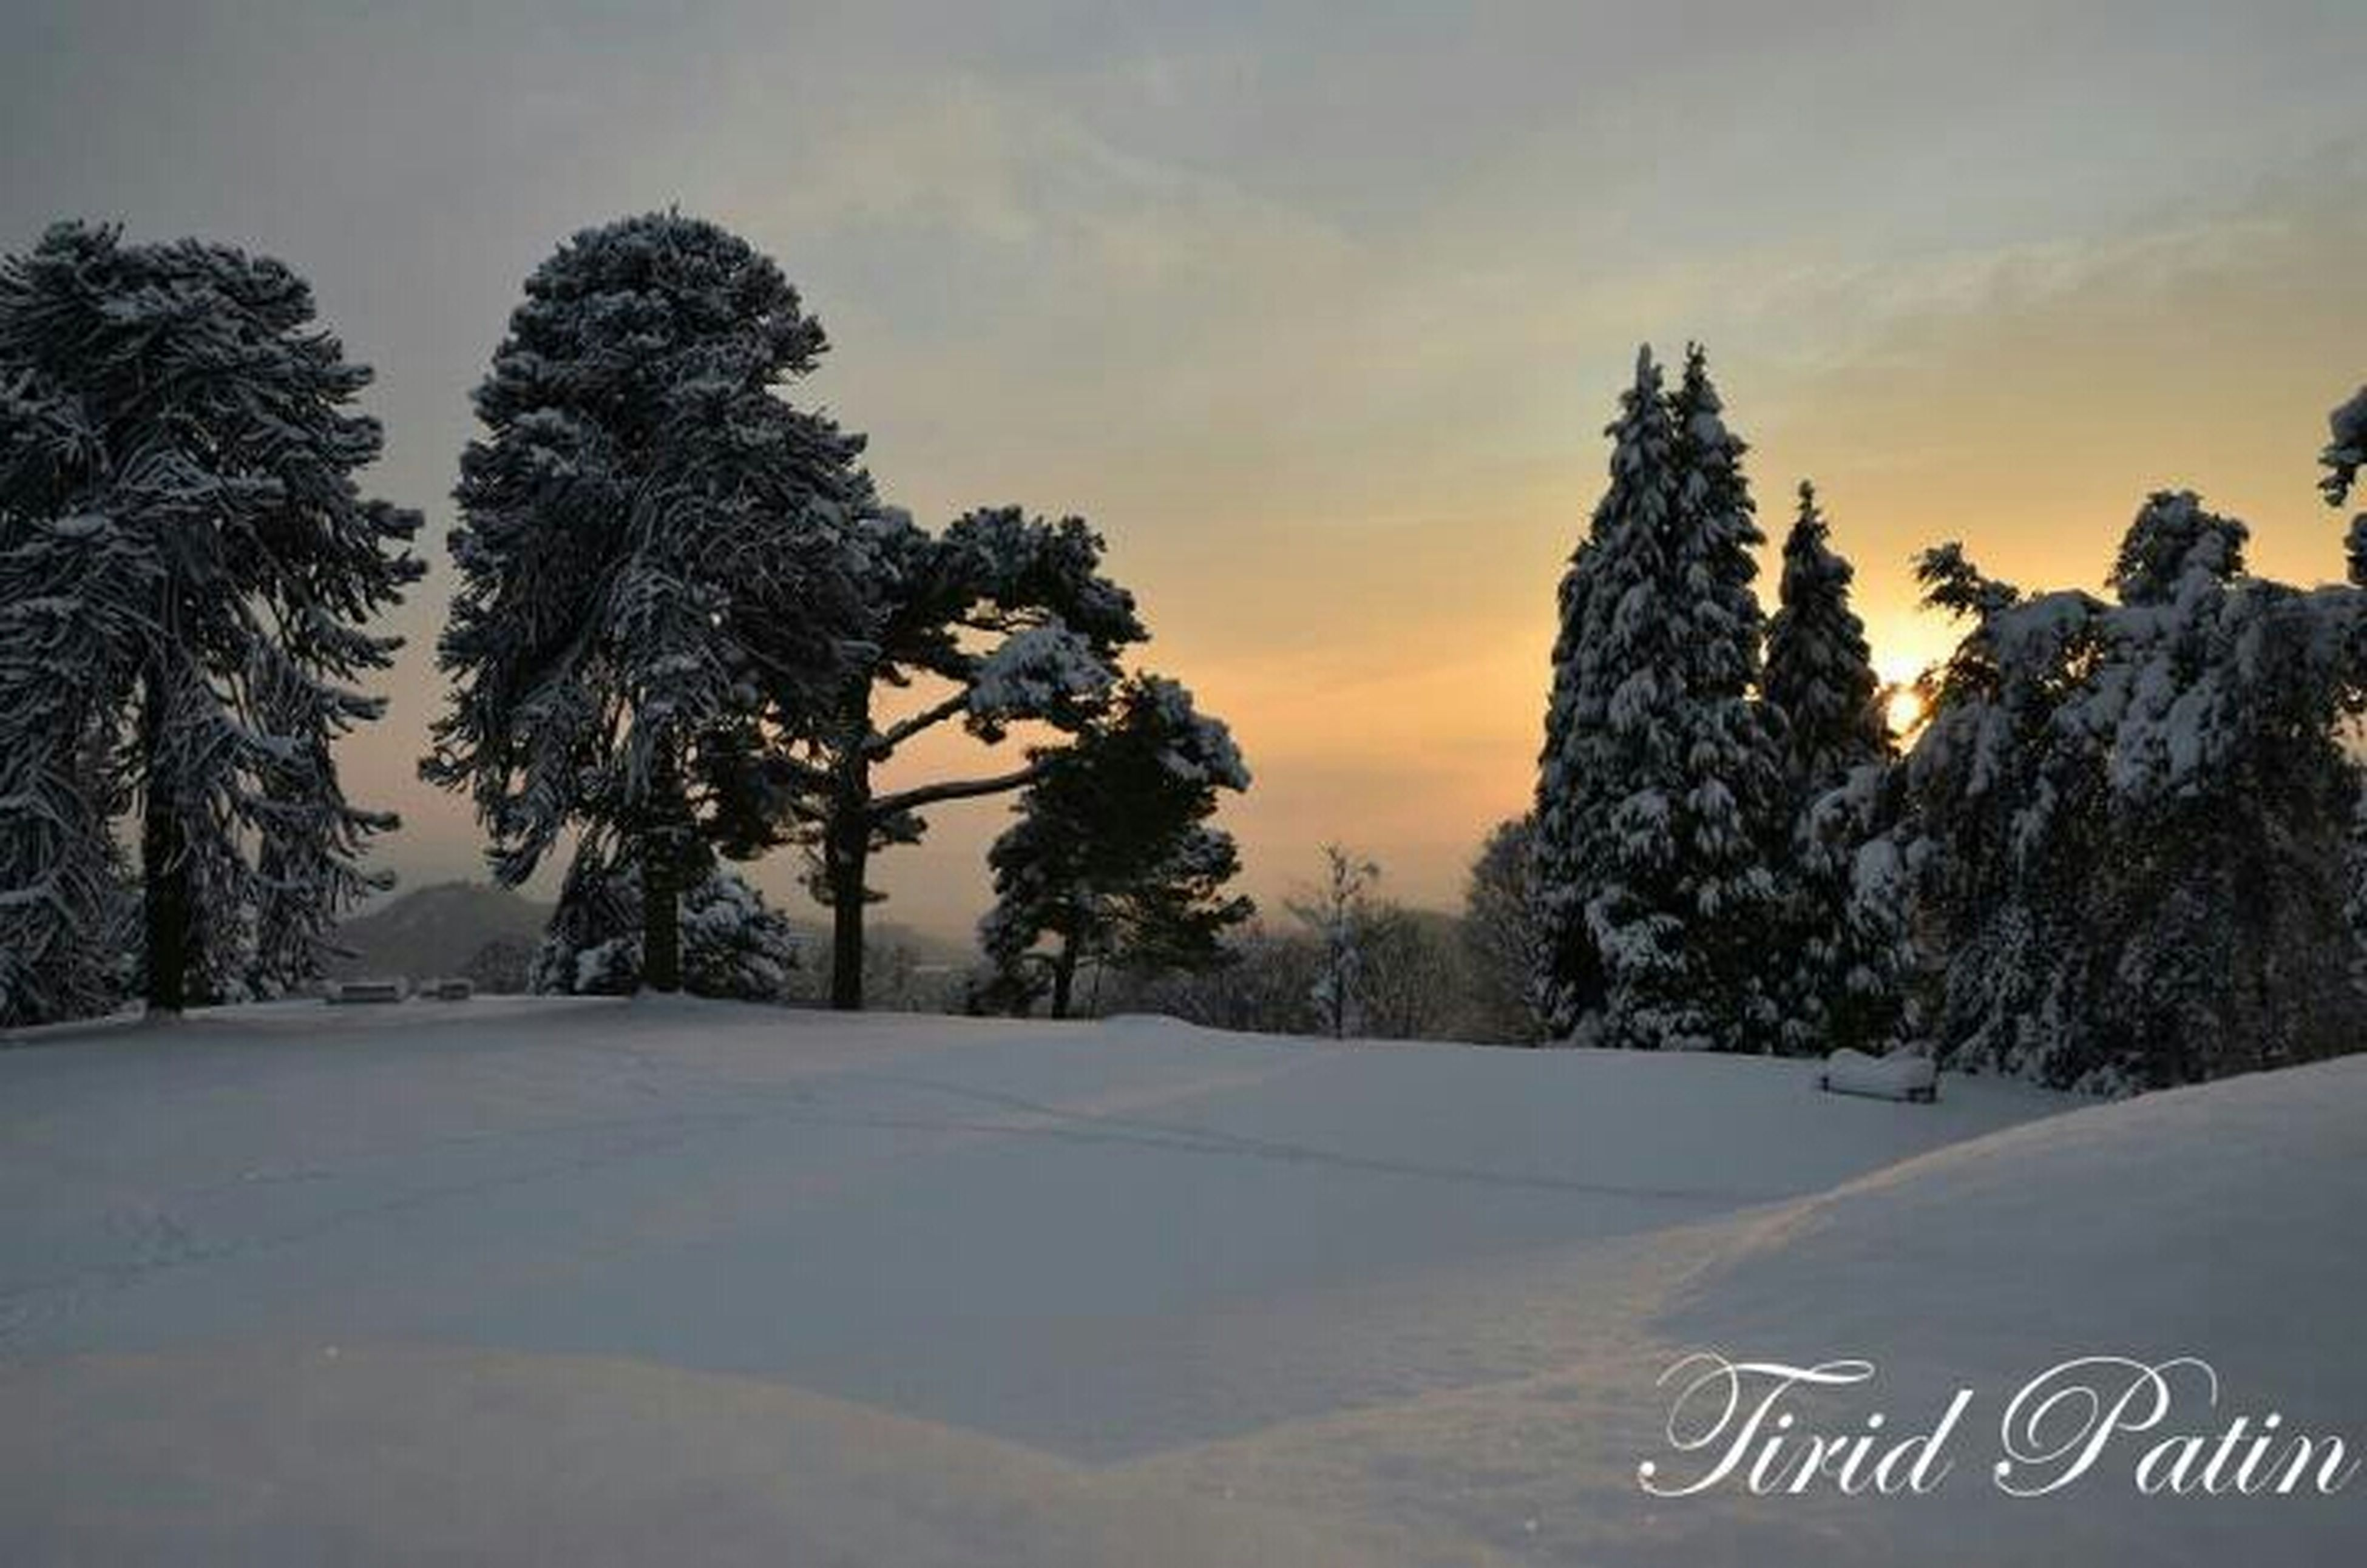 snow, winter, tree, cold temperature, sky, season, tranquility, tranquil scene, sunset, beauty in nature, scenics, weather, nature, cloud - sky, covering, landscape, no people, outdoors, cloud, non-urban scene